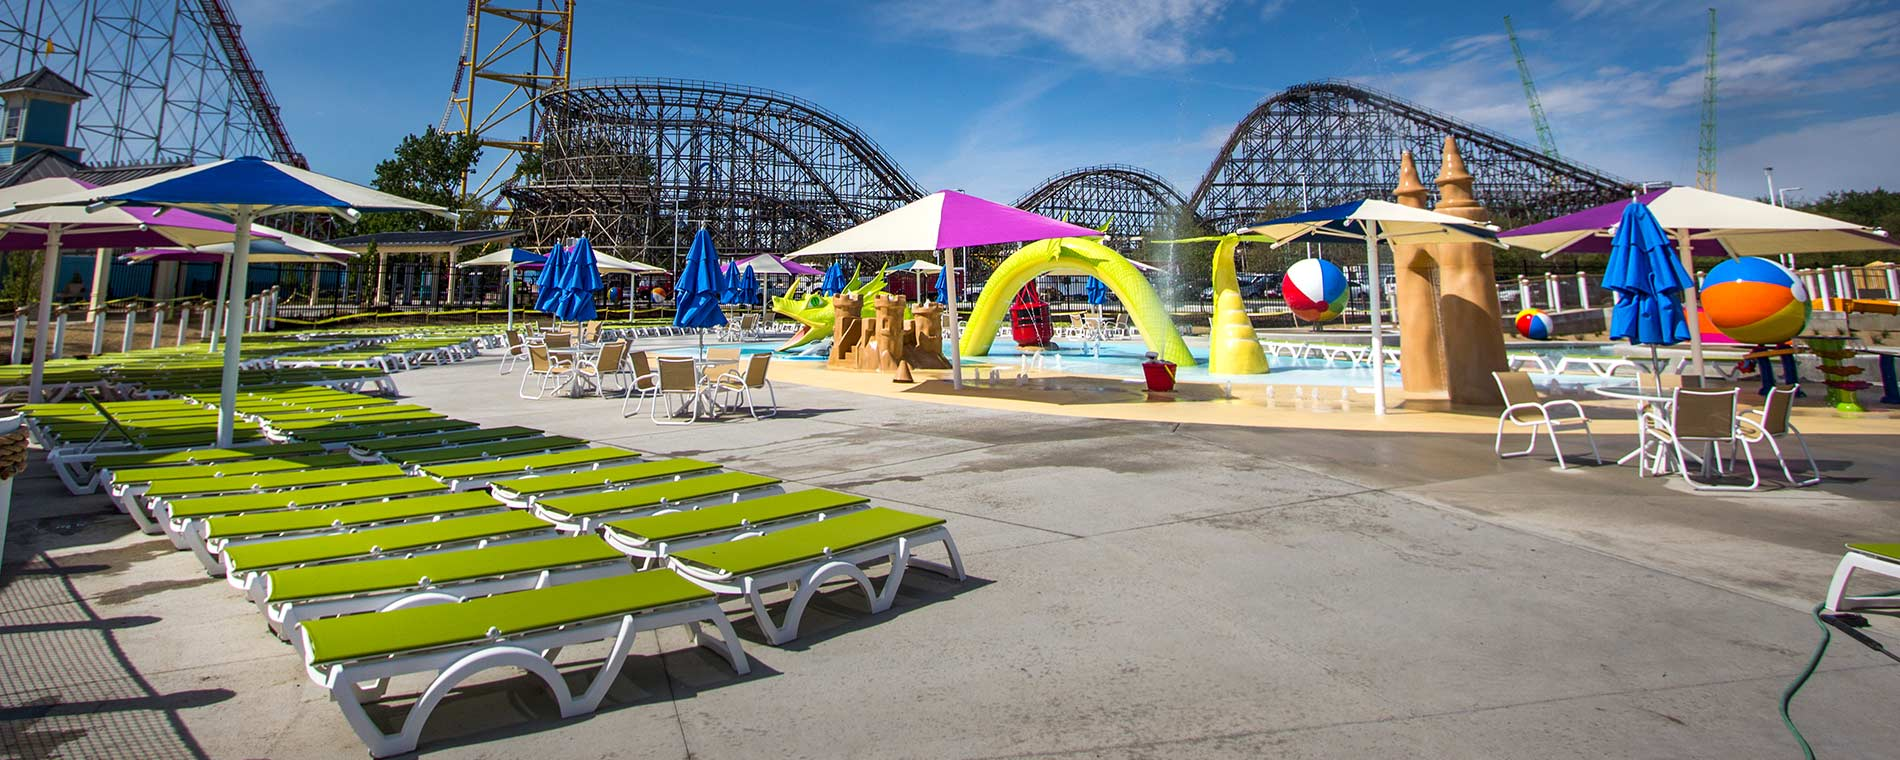 Lakeslide Landing Sun Deck at Cedar Point Shores Water Park